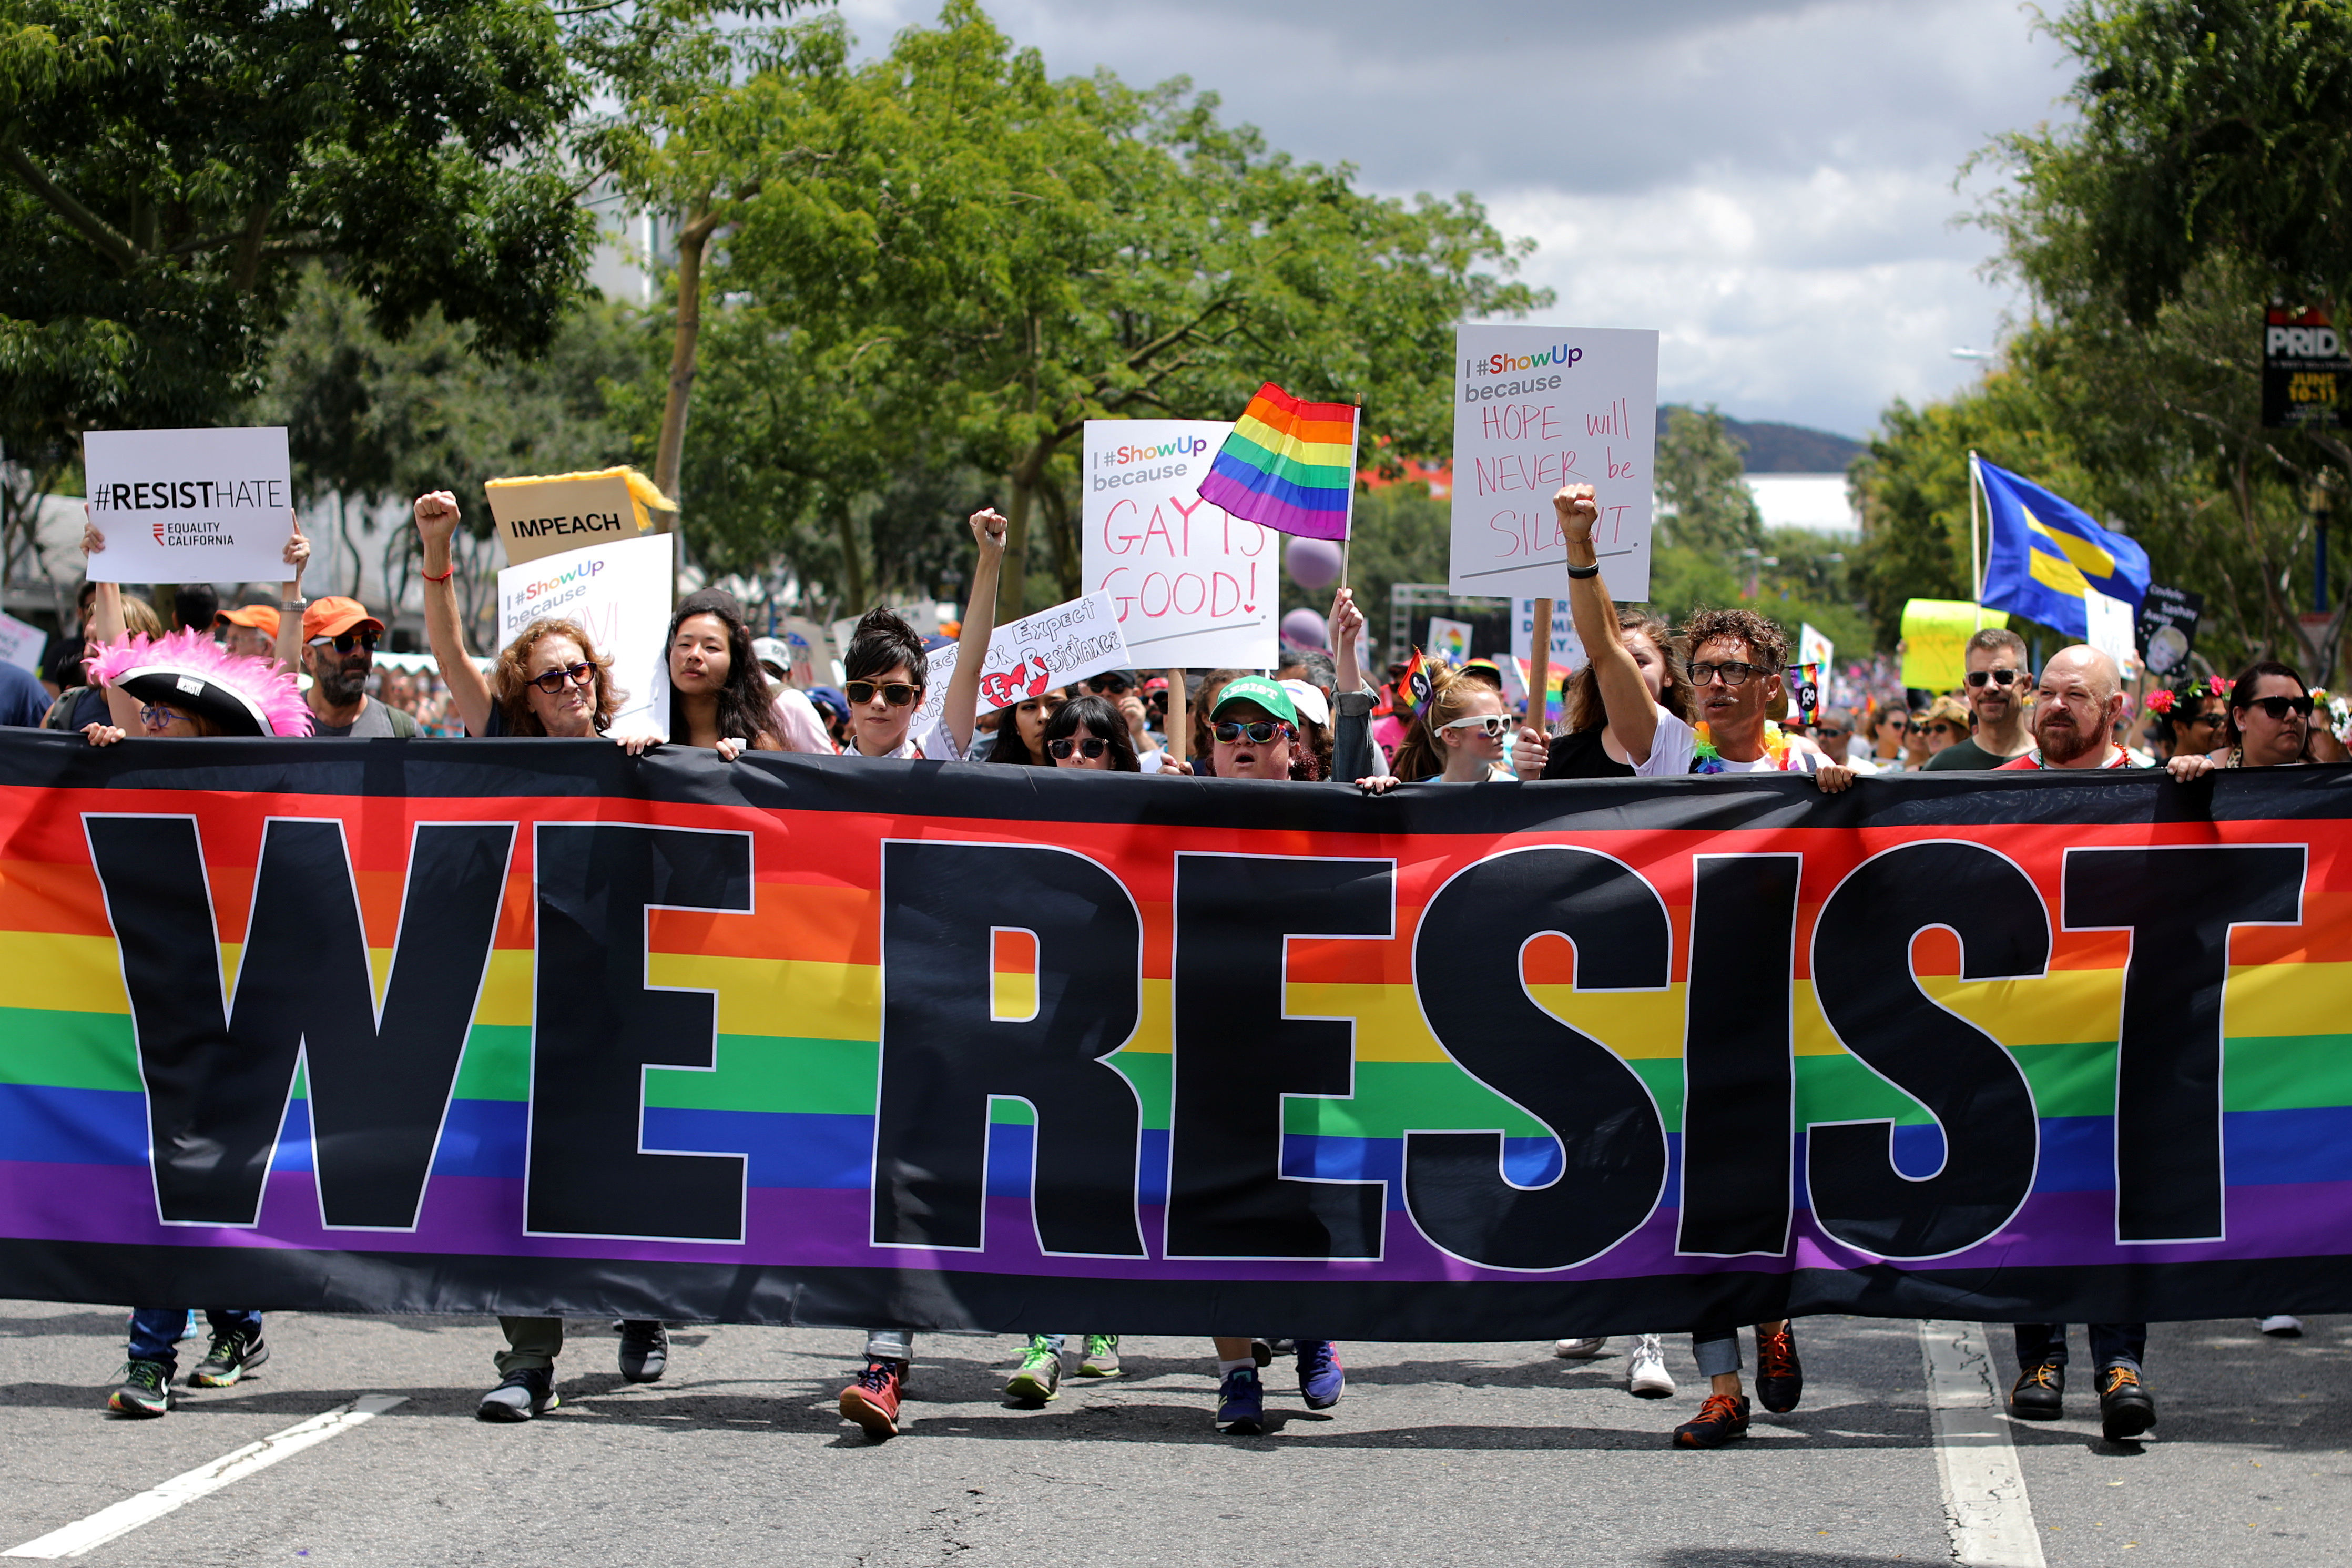 The annual Pride Parade is replaced with a Resist March as members of the LGBT community protest President Donald Trump in West Hollywood, California, U.S. June 11, 2017. REUTERS/Mike Blake